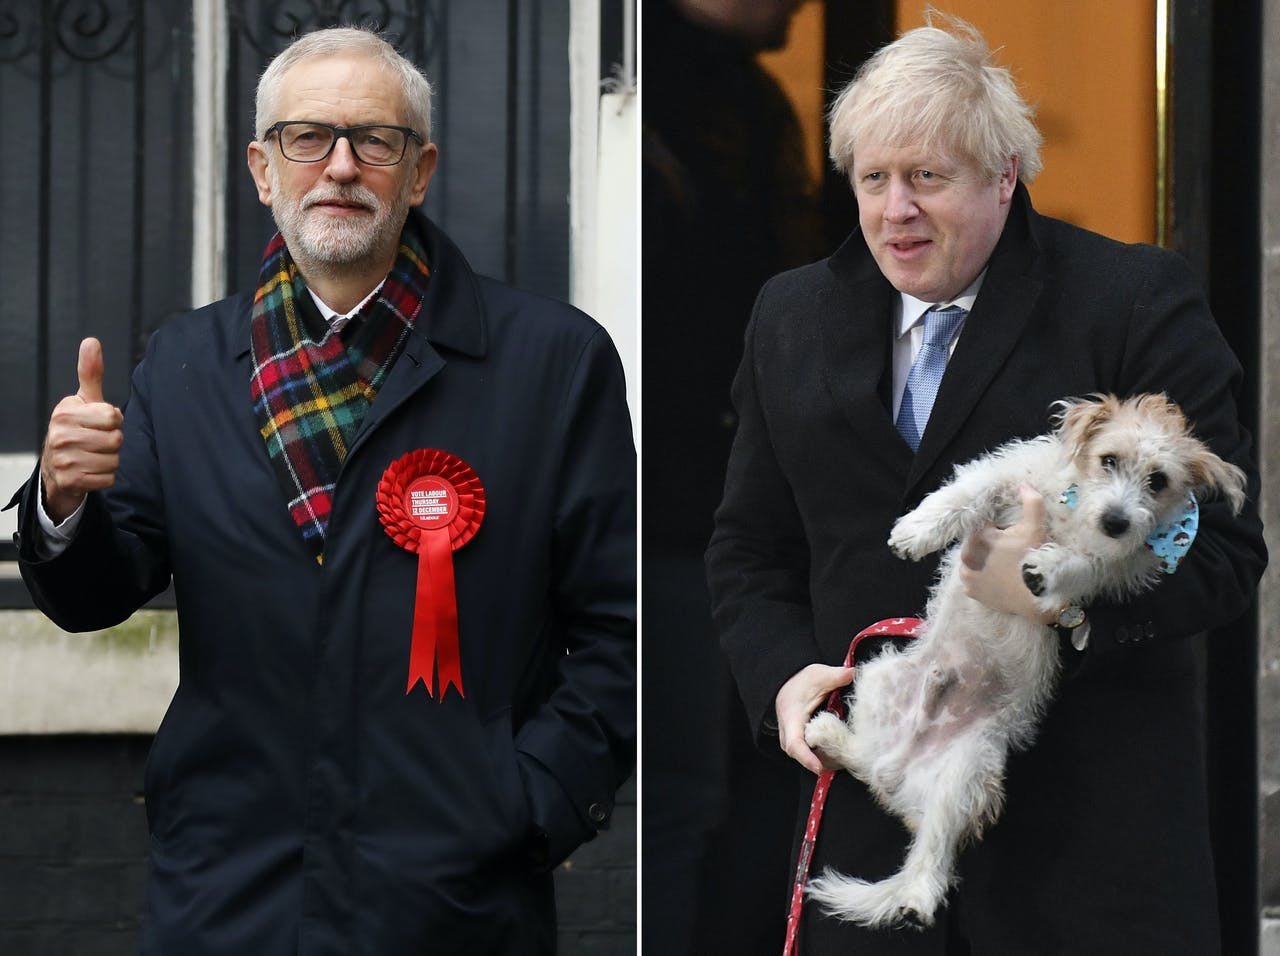 Jeremy Corbyn (Labour) en Boris Johnson (Conservative)